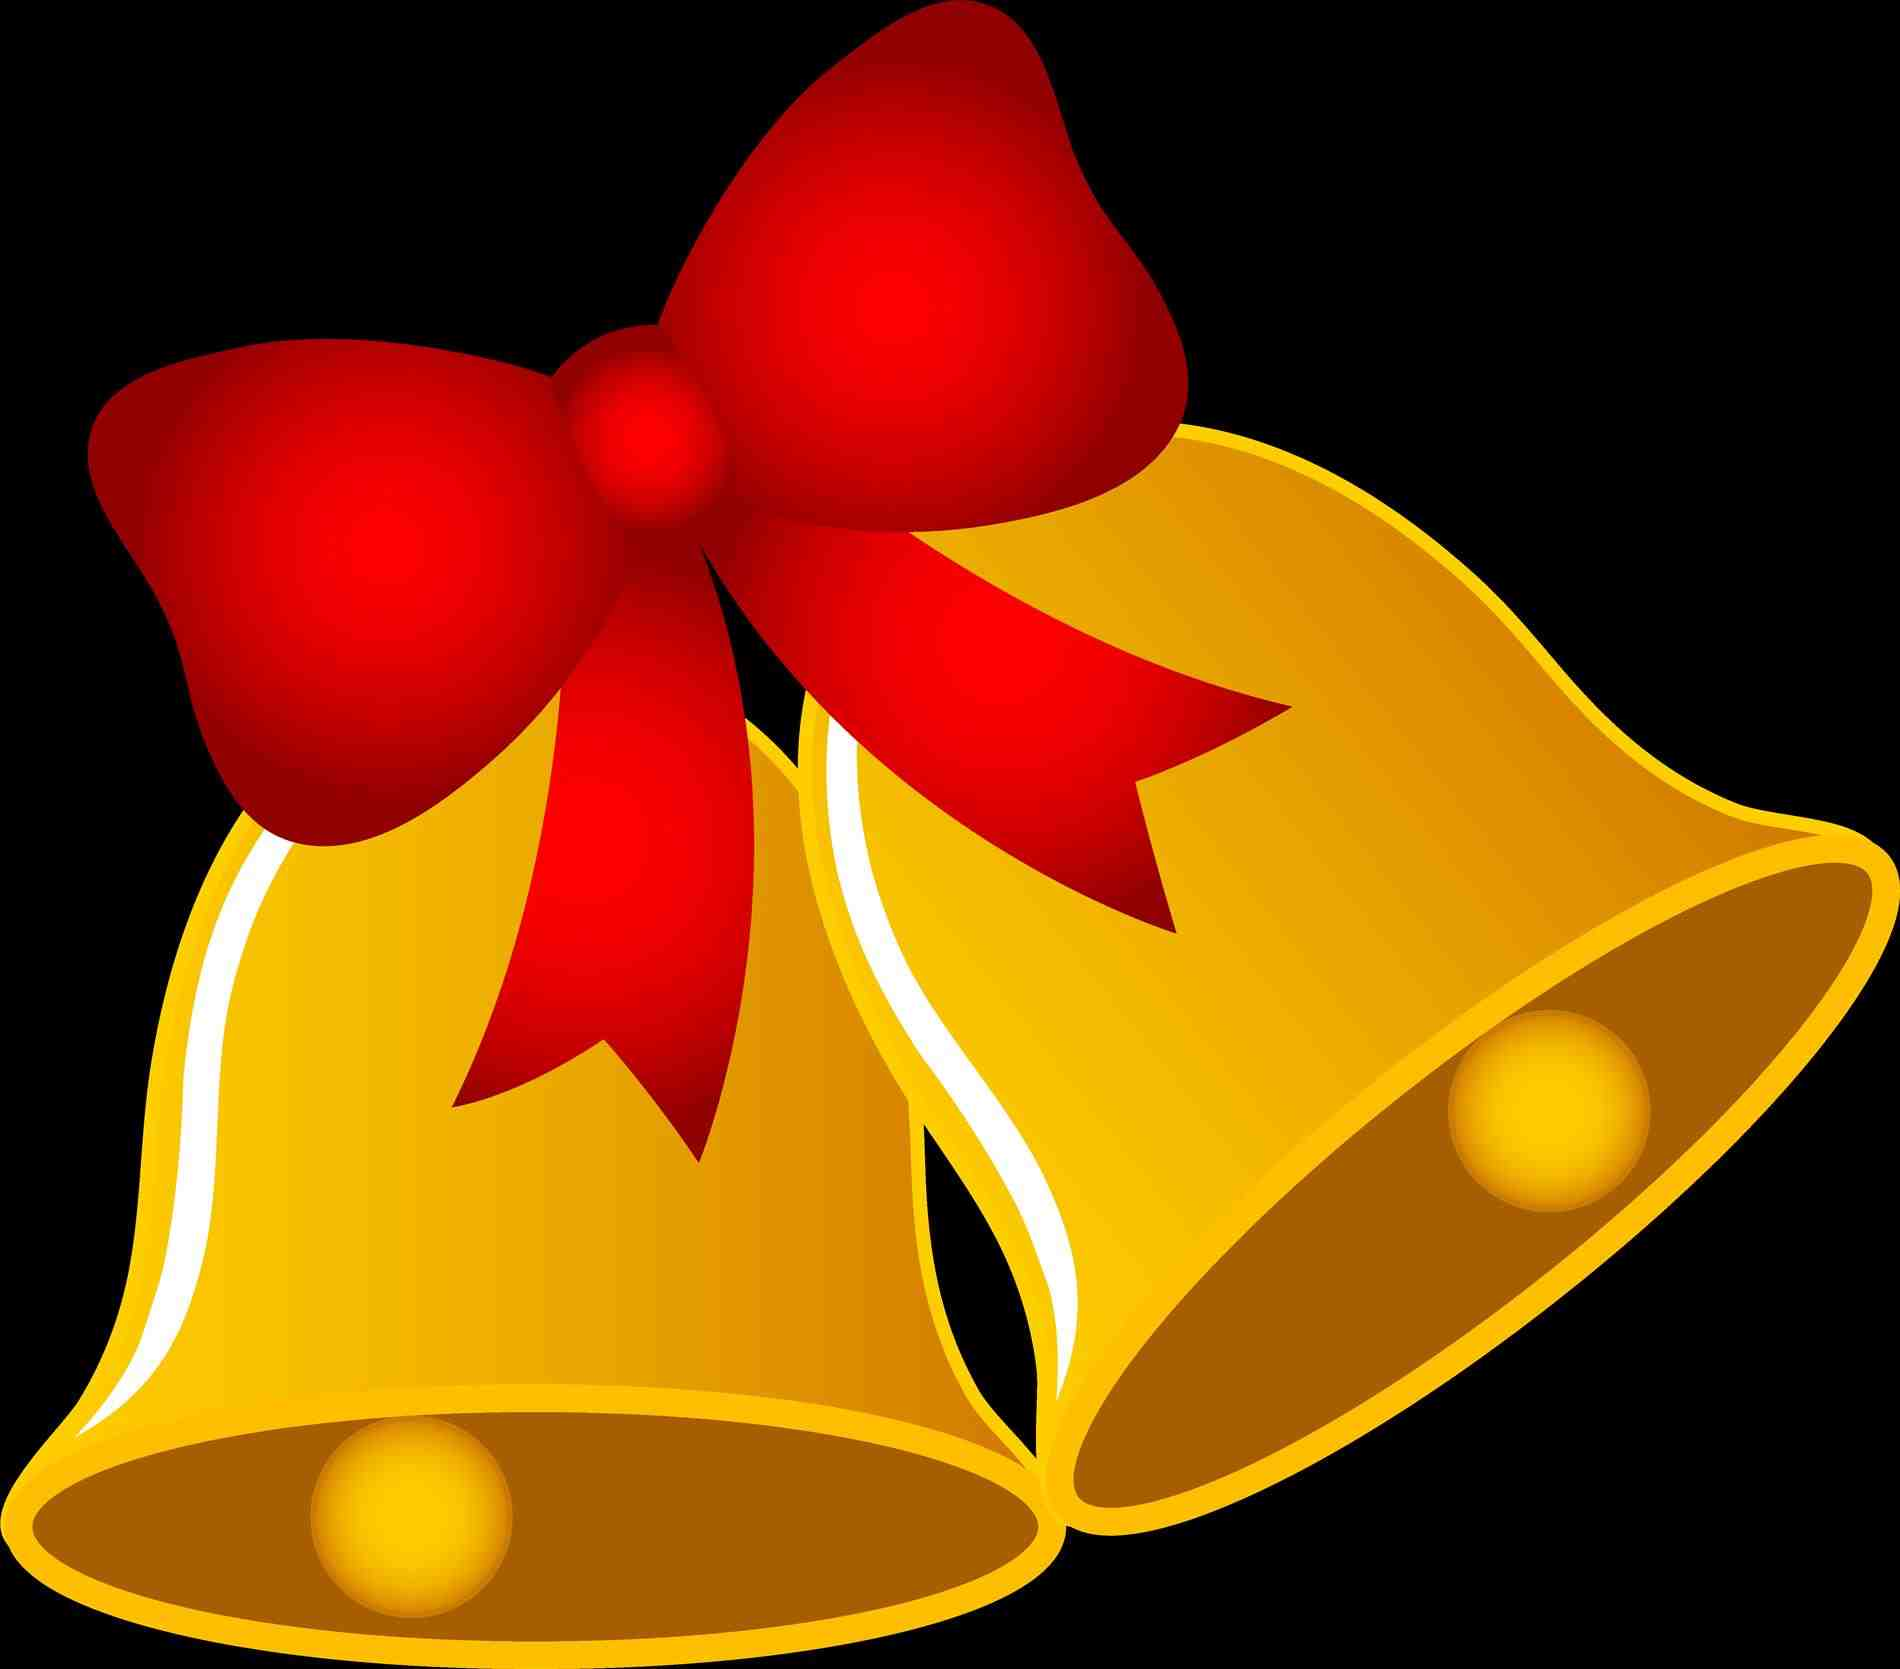 1900x1669 Christmas Bow Clipart Png Clip Art Image Gallery Ribbon S U Happy